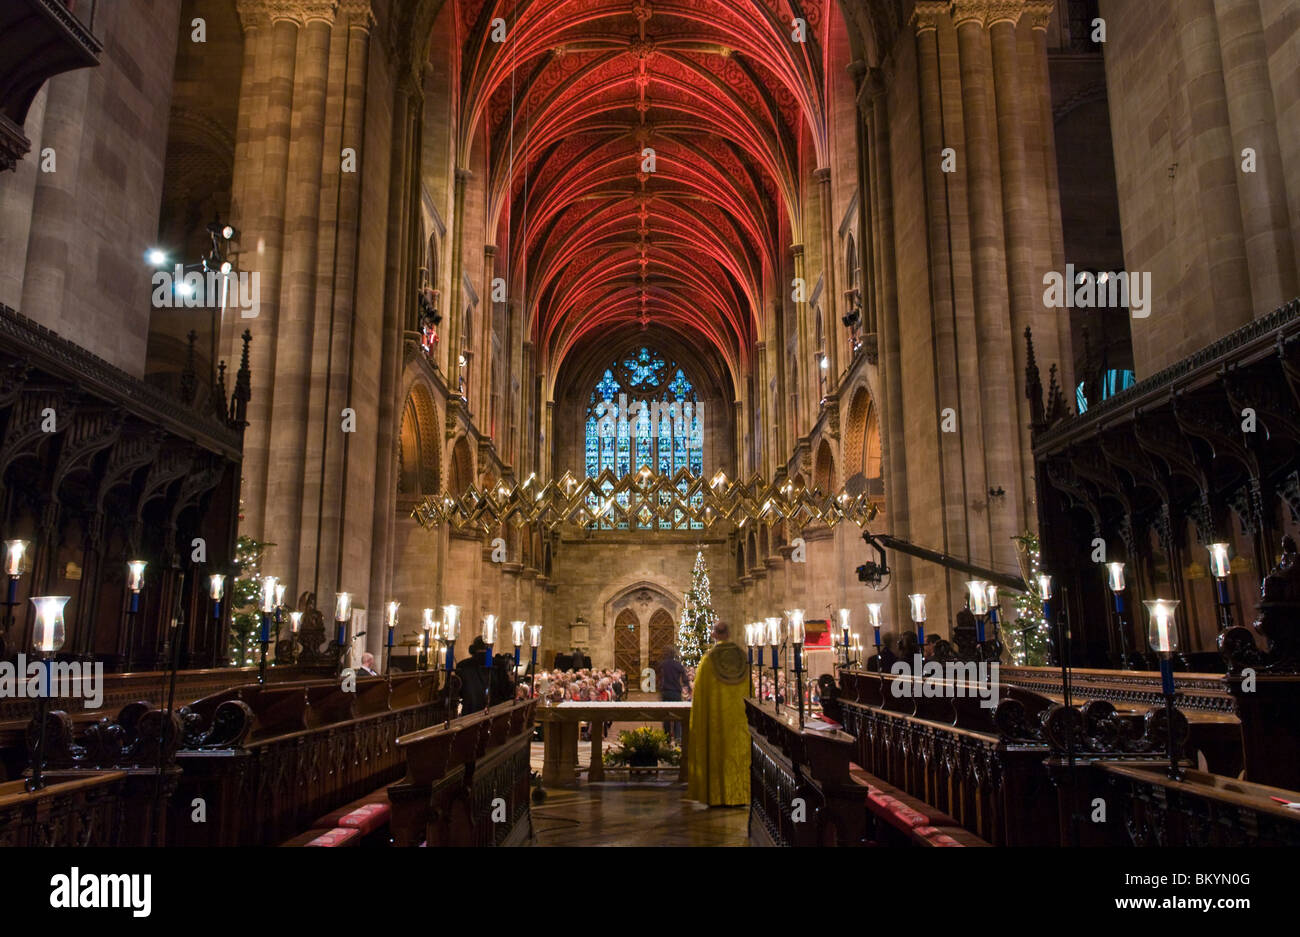 Interior of Hereford Cathedral lit for BBC Songs of Praise - Stock Image